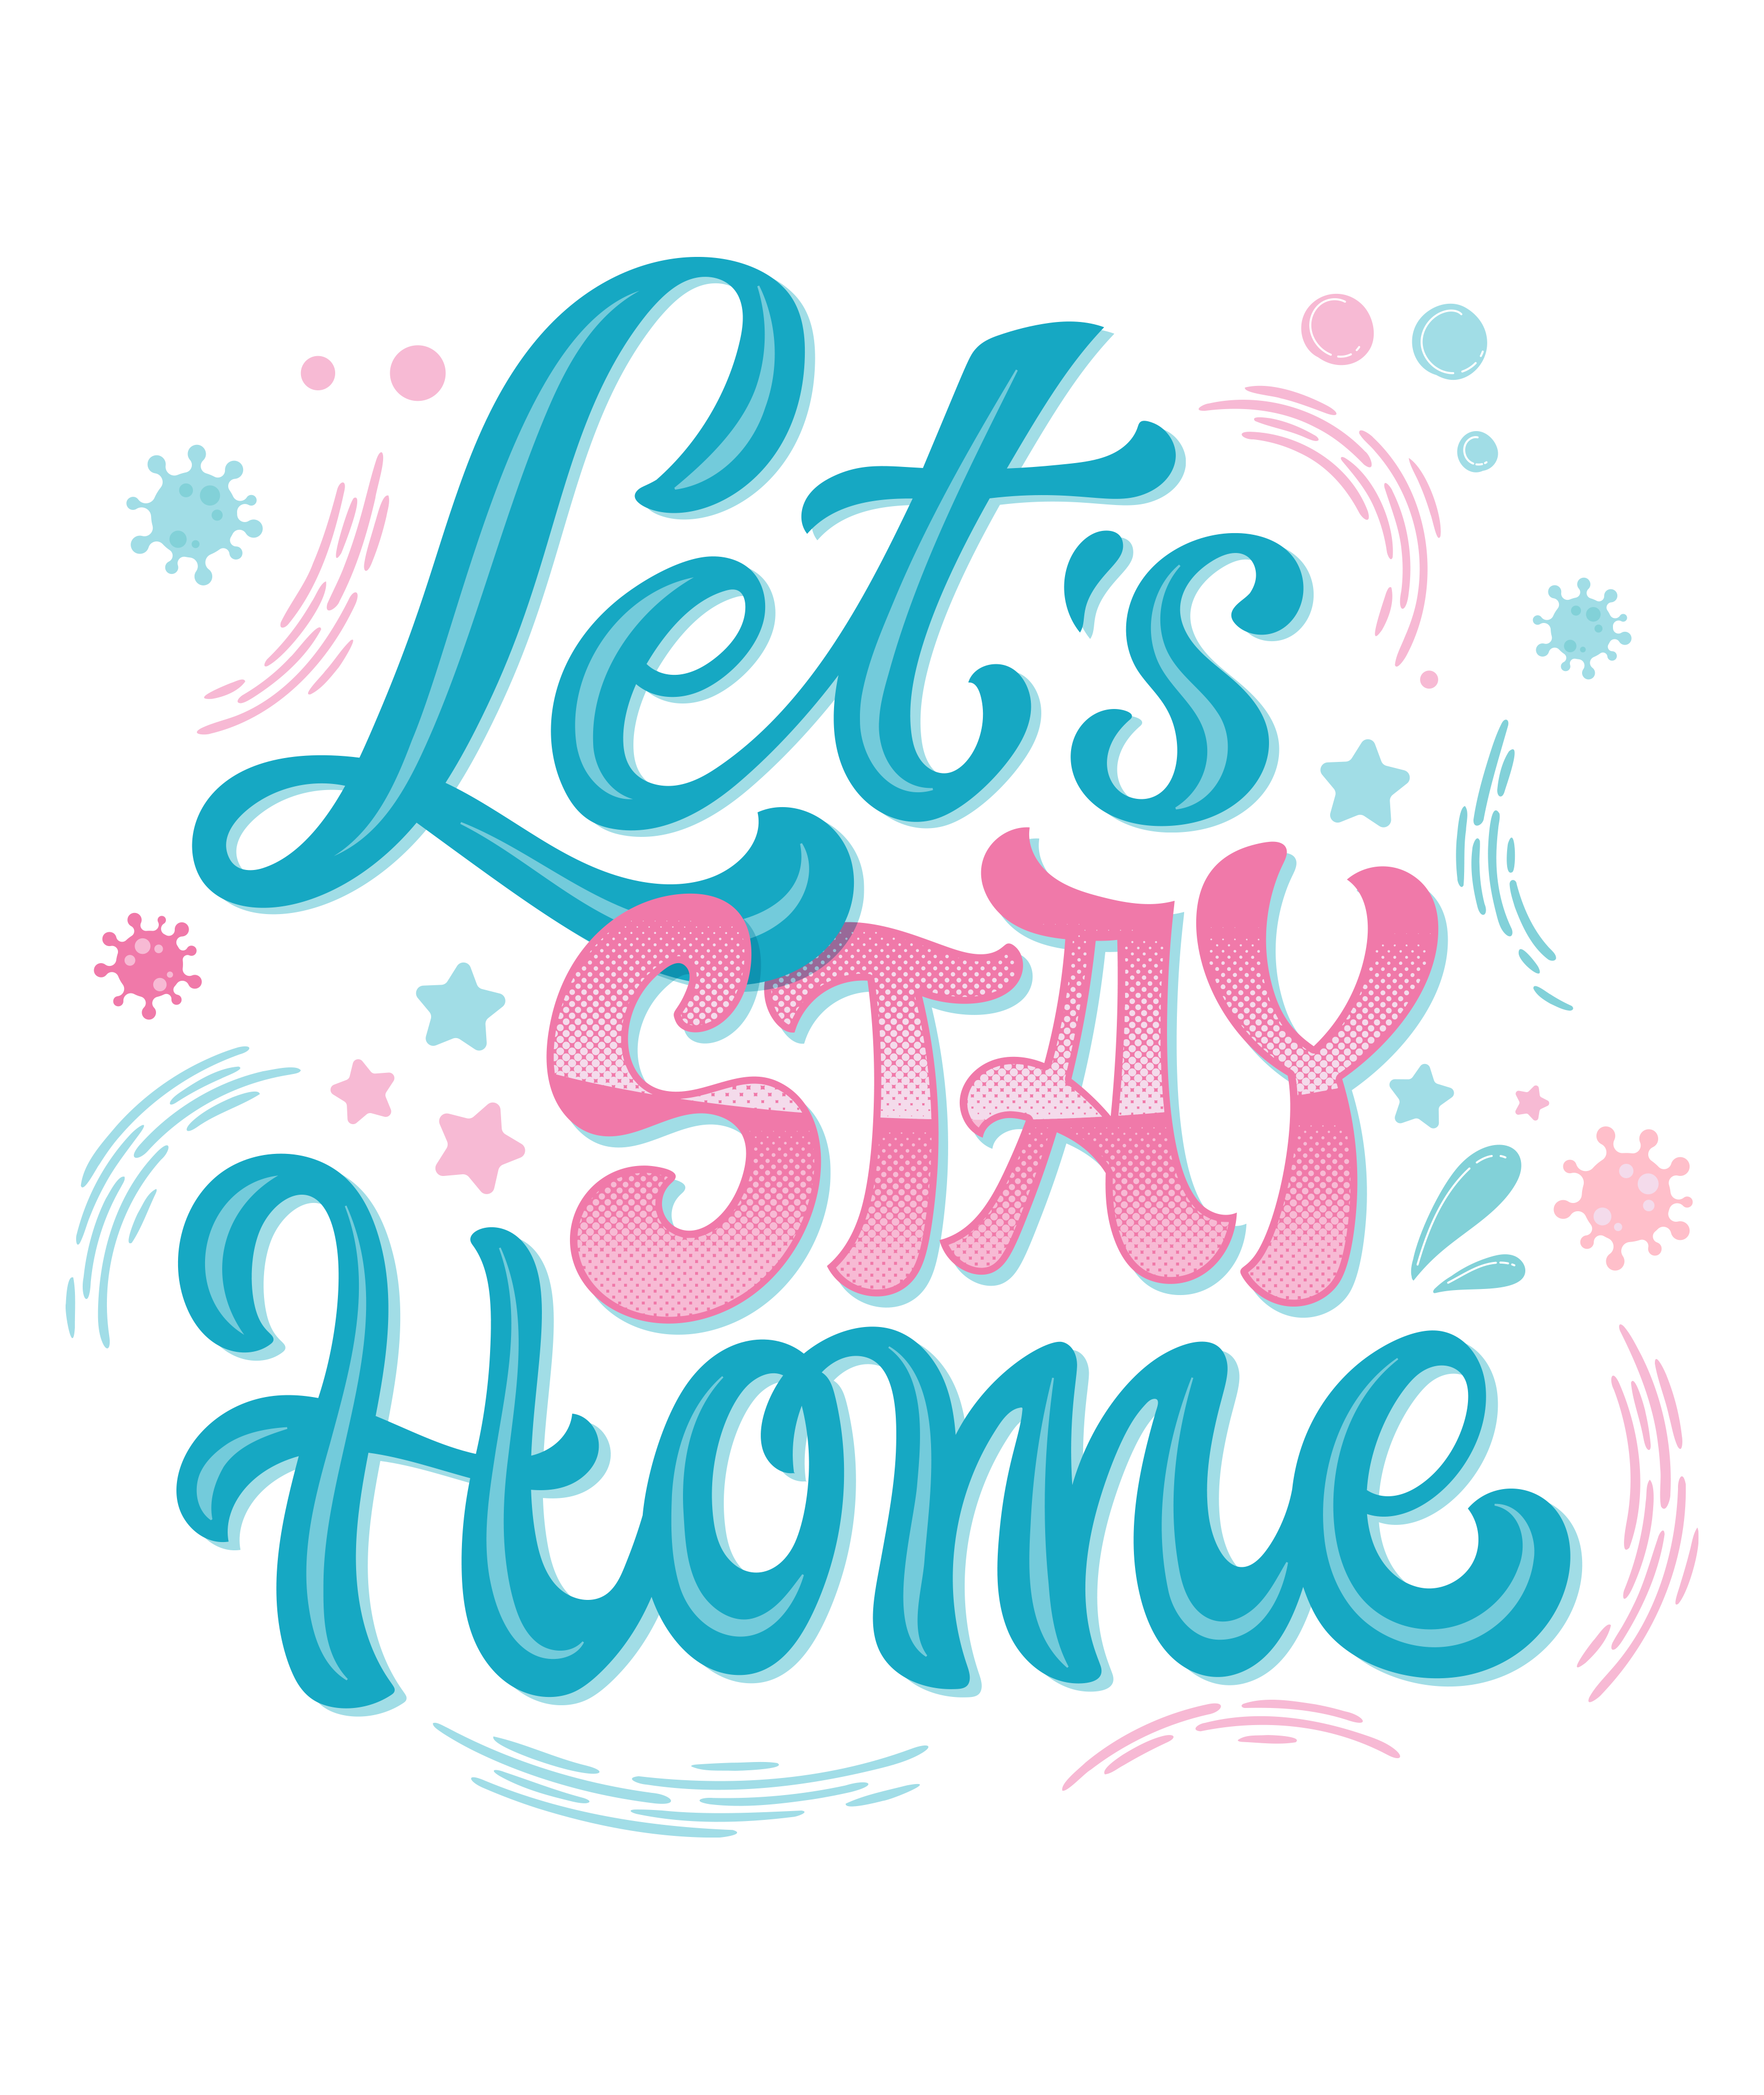 Let S Stay Home In 2020 Lets Stay Home Hand Drawn Lettering Card Designs Inspiration